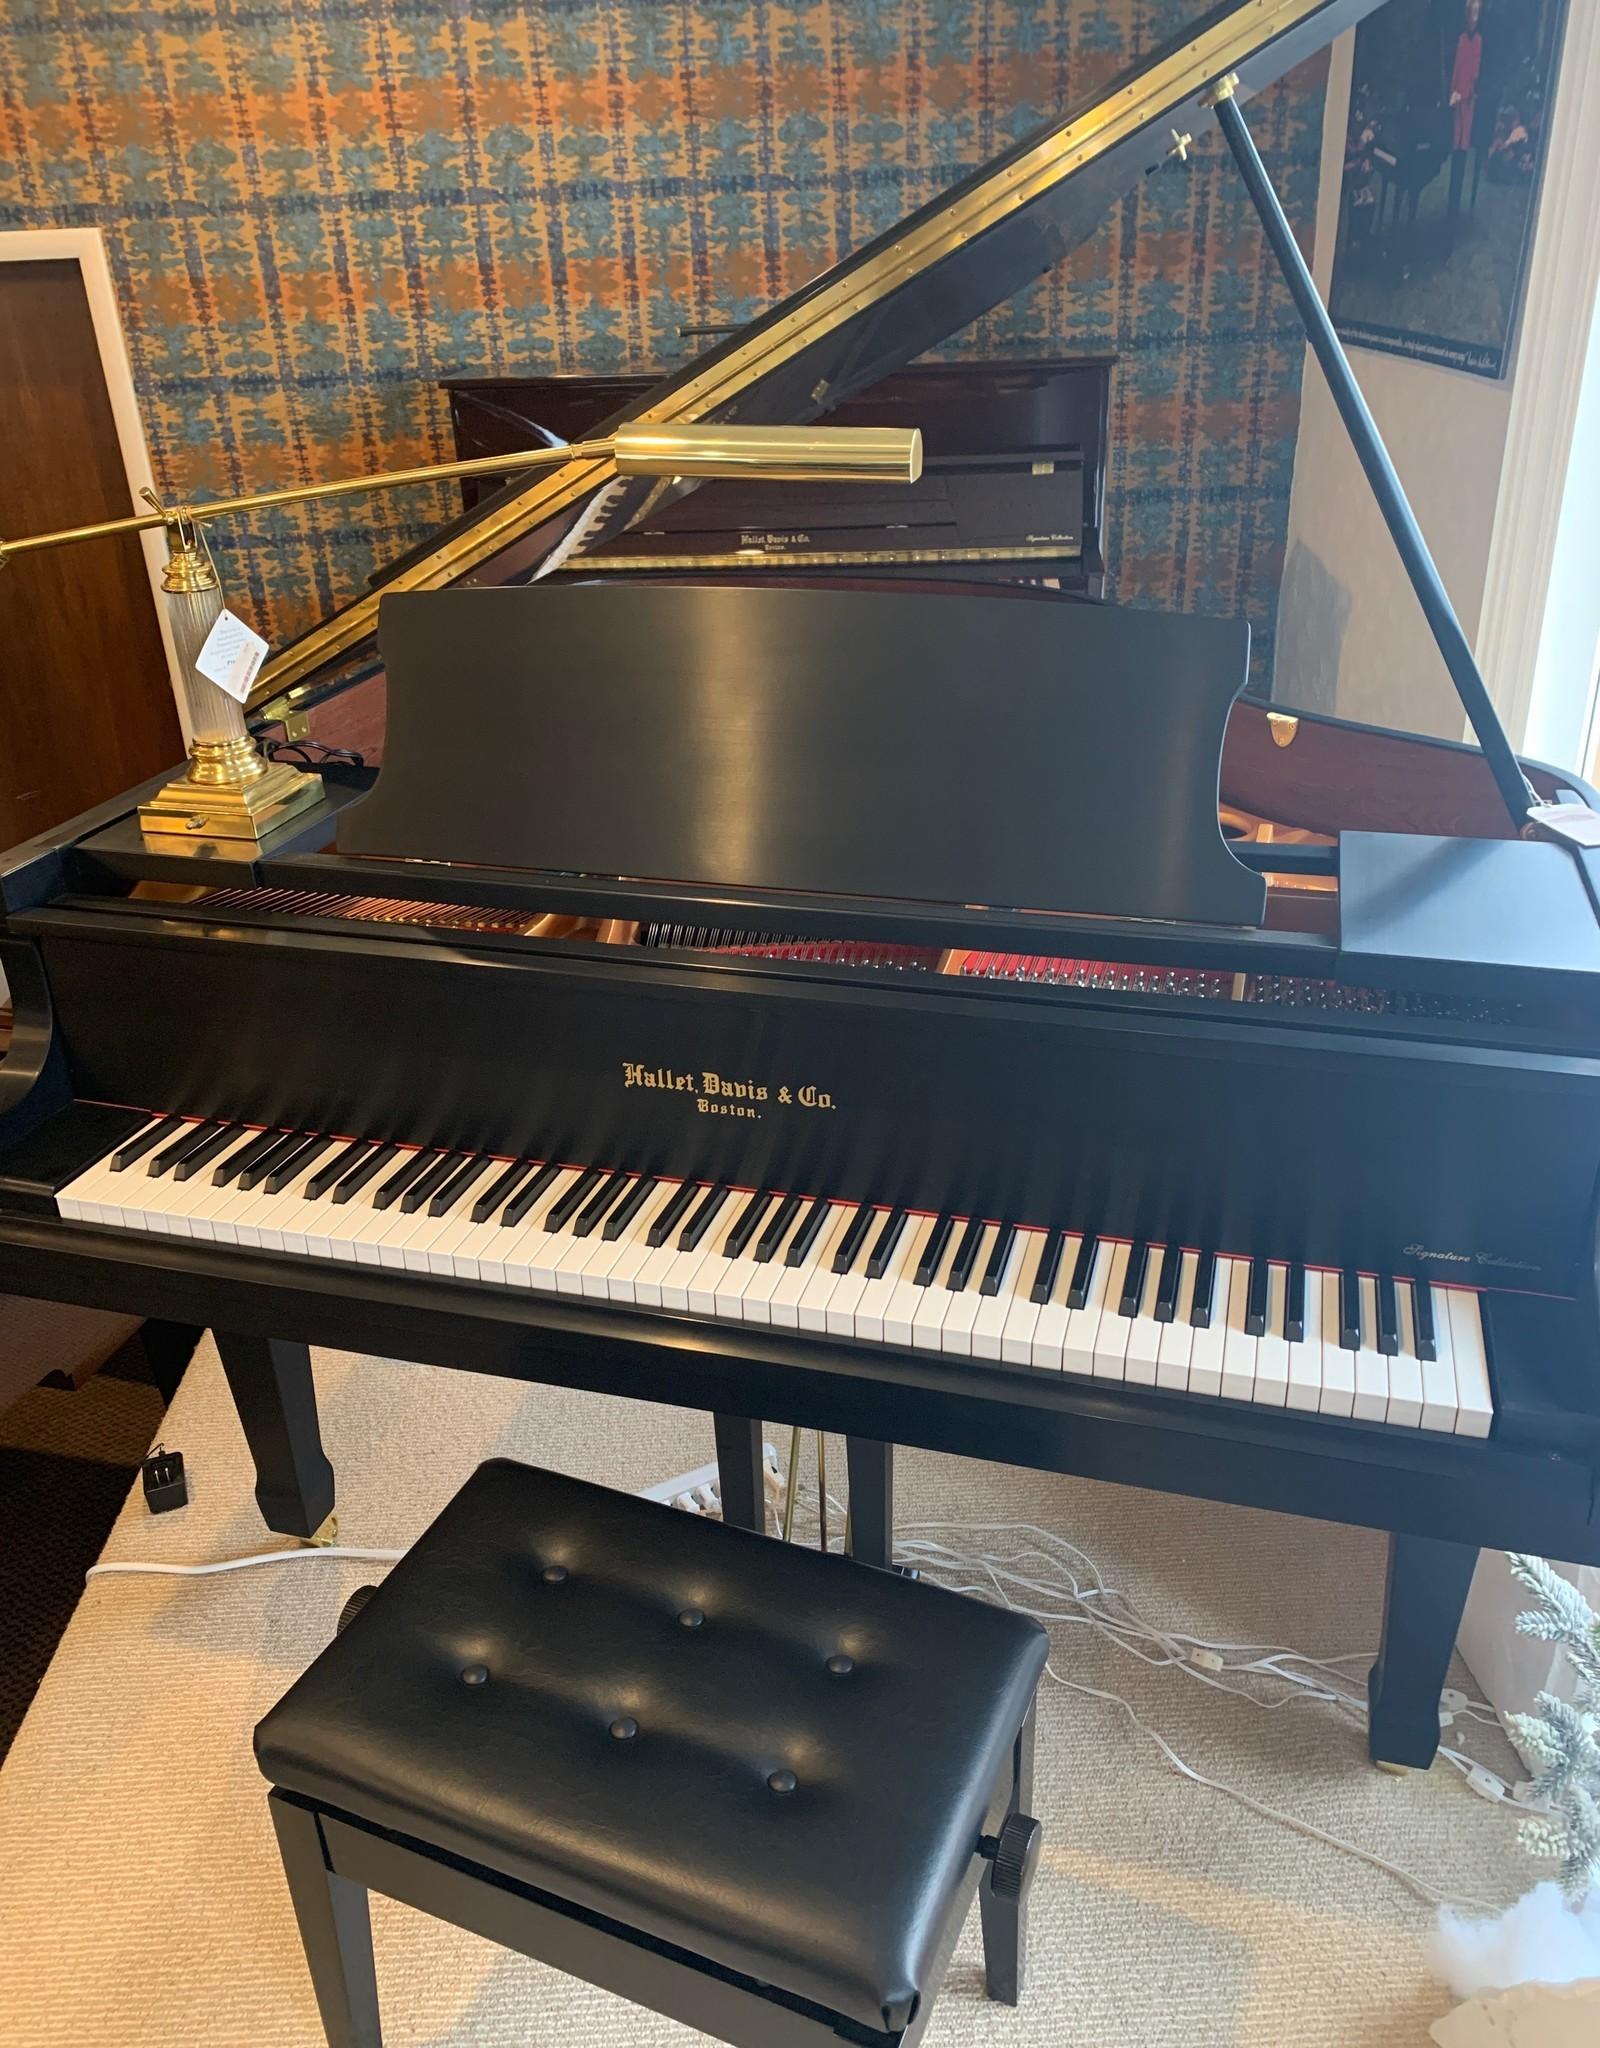 "Hallet Davis & Co. Hallet, Davis and Co. HS160 5'3"" Elite Grand Piano (Satin Ebony with Mahogony Inner Rim)"